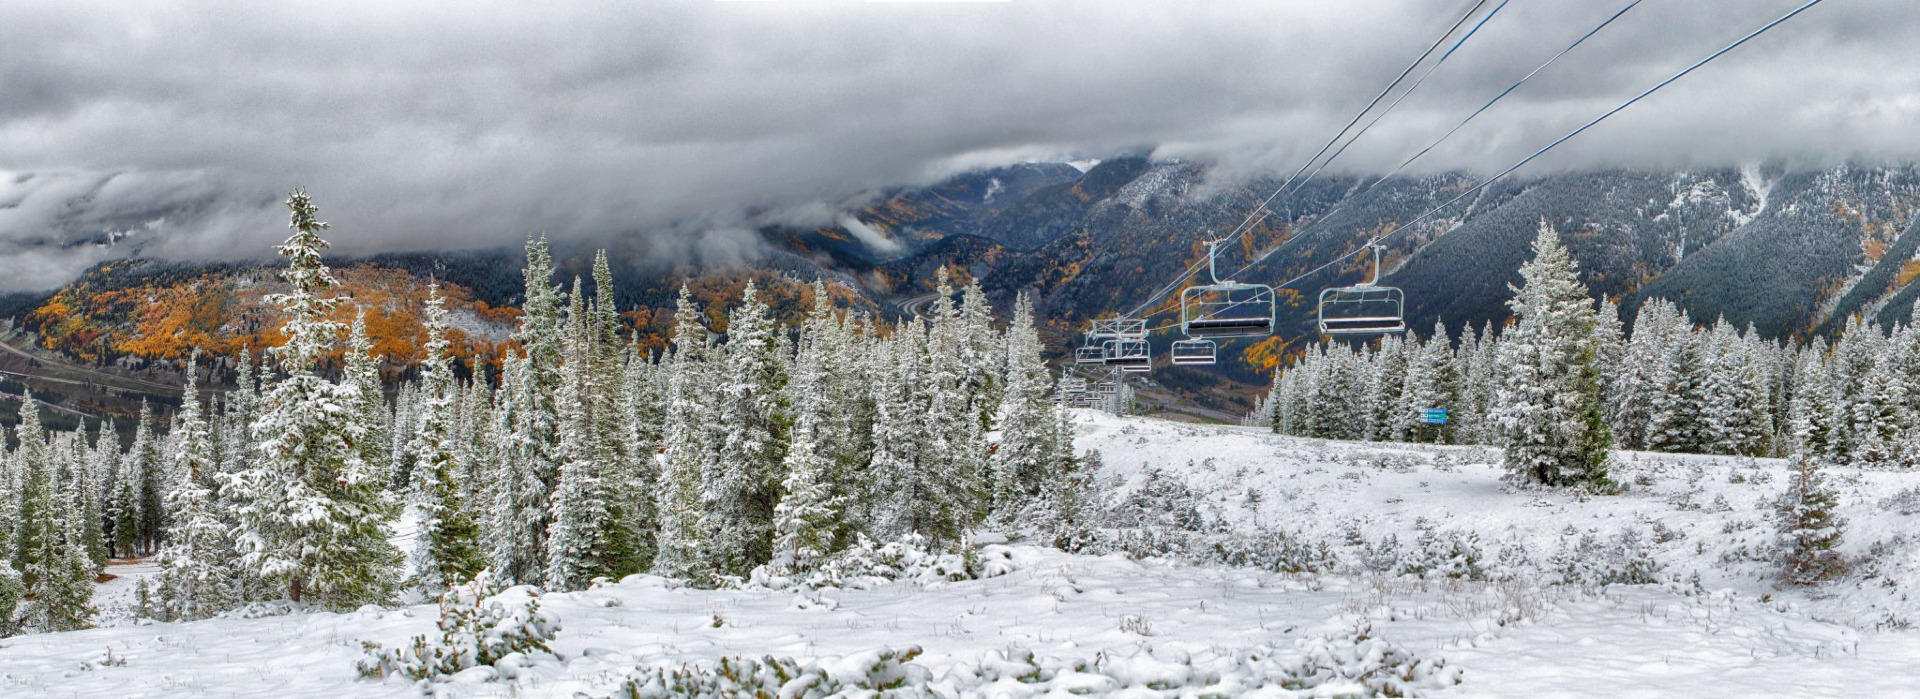 September snowfall at Copper Mountain - ©Tripp Fay